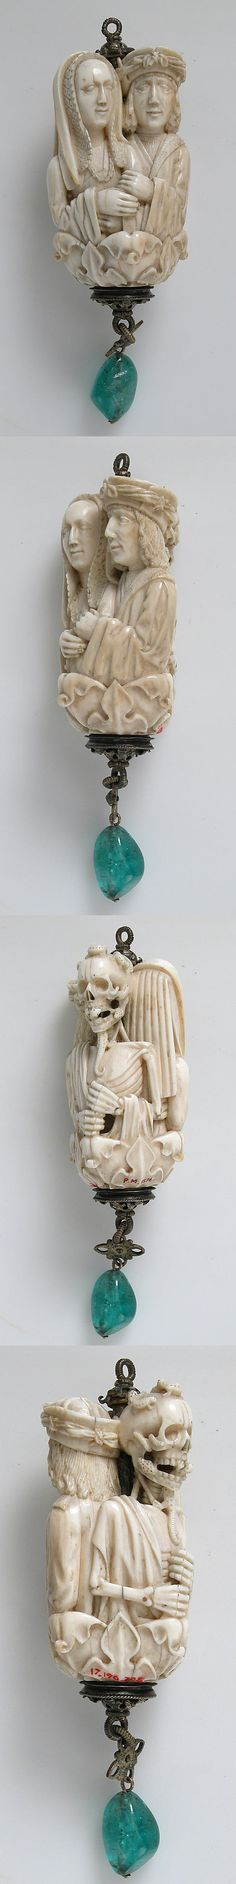 Rosary Terminal Bead with Lovers and Death's Head, Northern France or Southern Netherlands, ca. 1500–1525, Ivory, with emerald pendant, silver-gilt mount